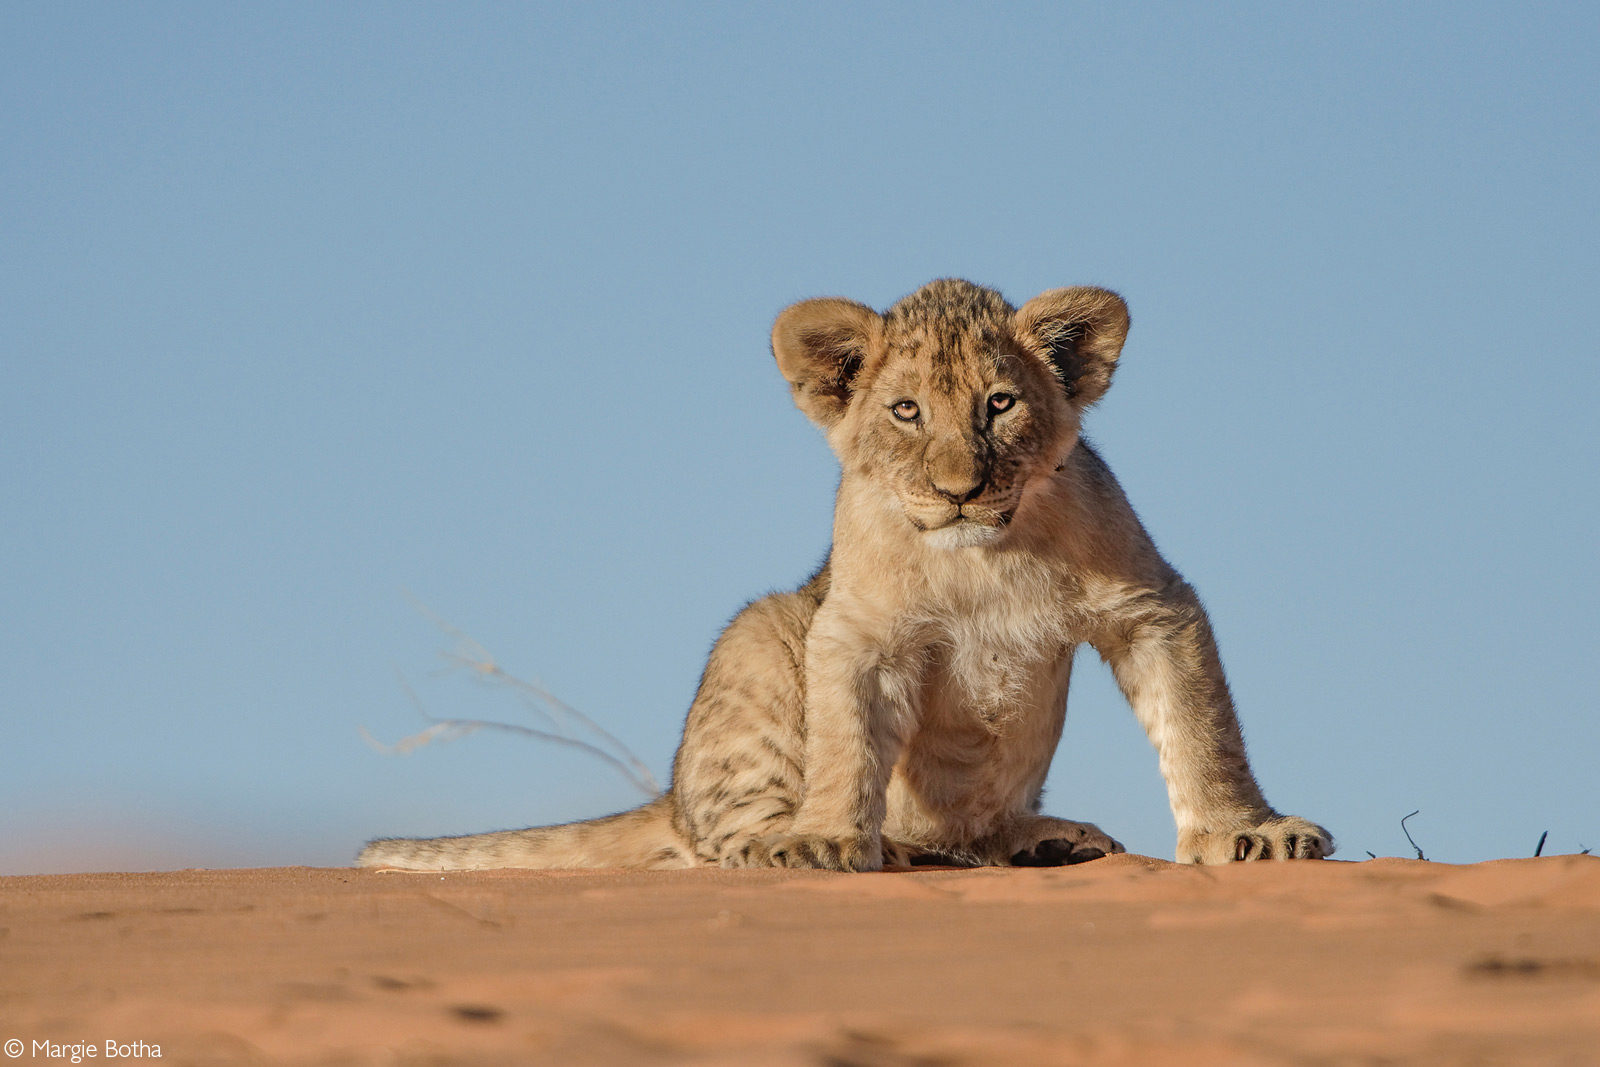 A very curious lion cub on a red dune. Kgalagadi Transfrontier Park, South Africa © Margie Botha